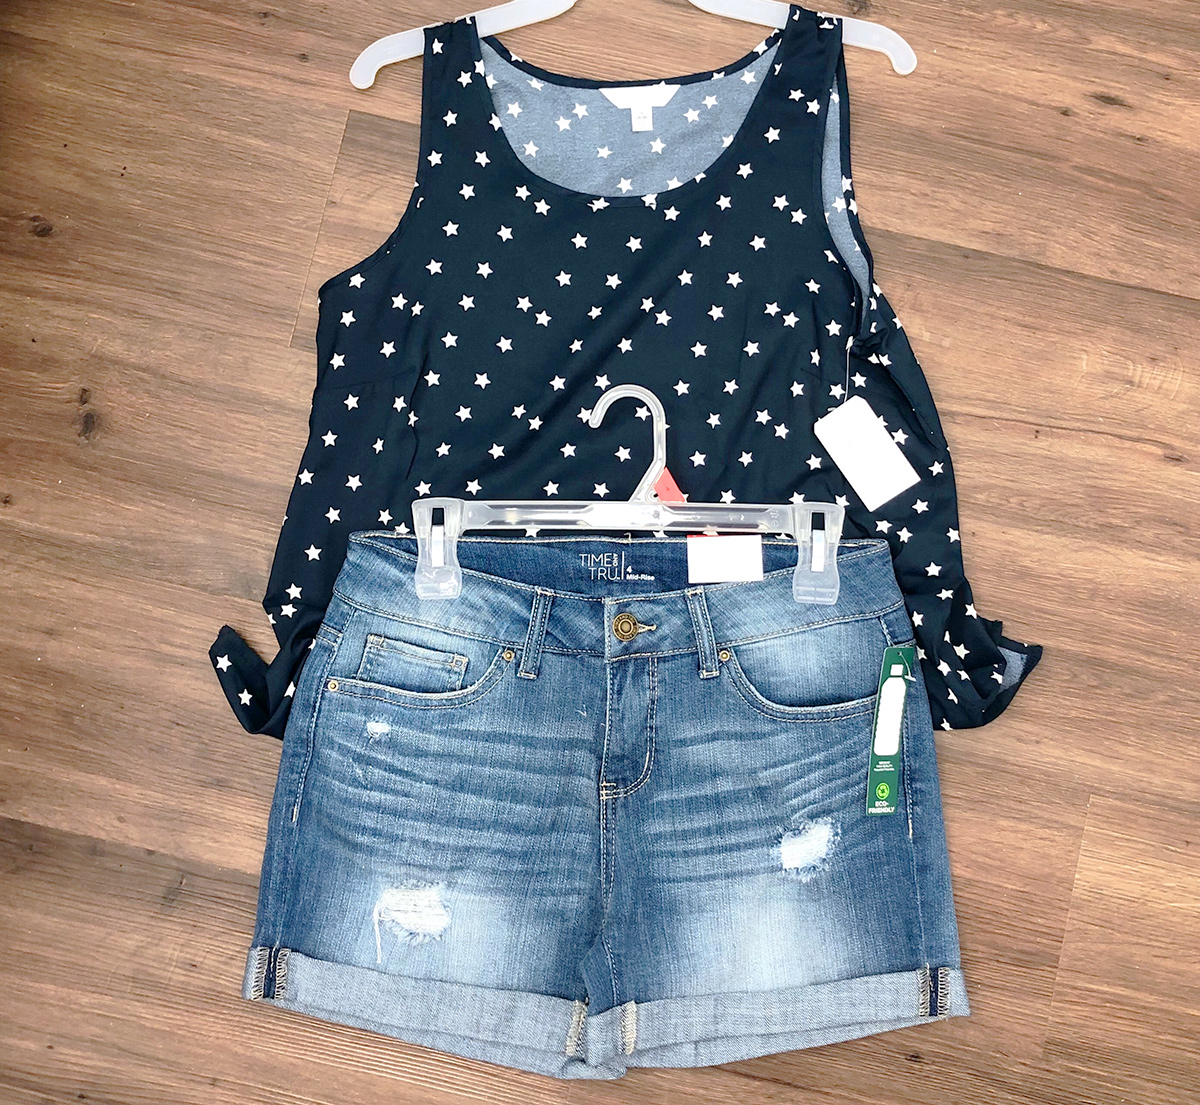 walmart outfit with blue and white star tank and jean shorts